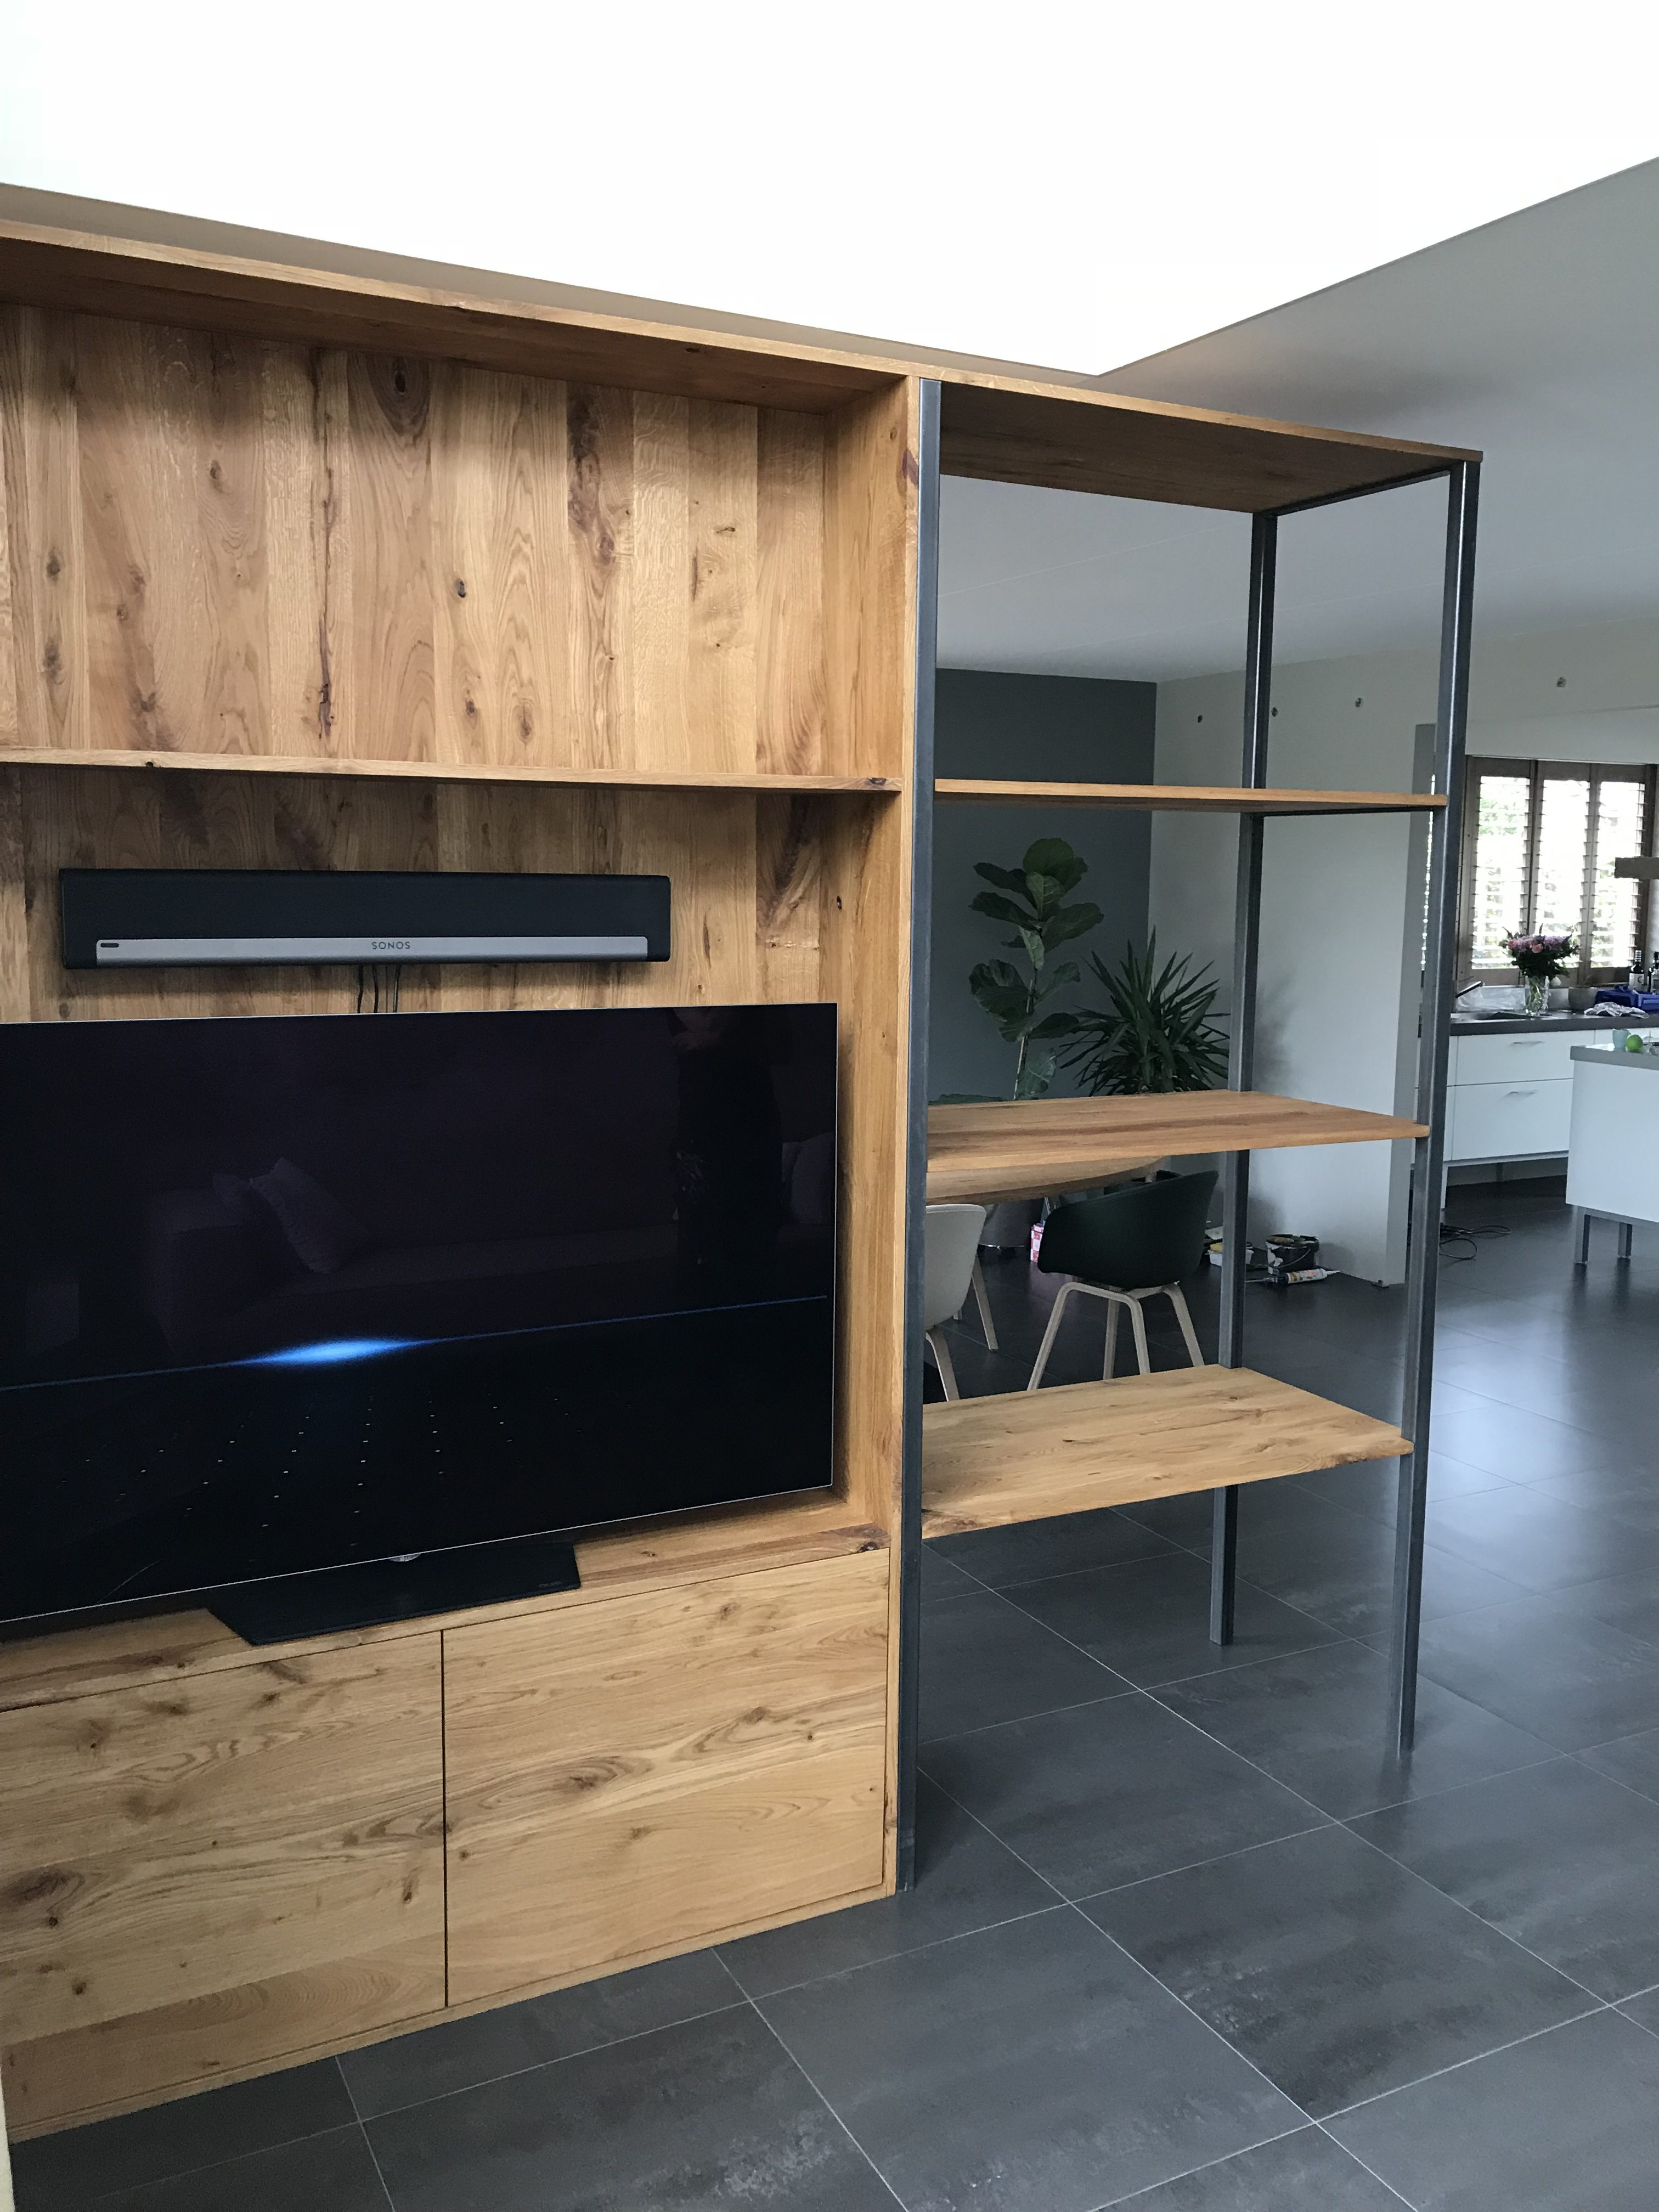 Tv Meubel En Kast.Maatwerk Tv Kast Tv Meubel Tv Wand Roomdivider Wortelwoods